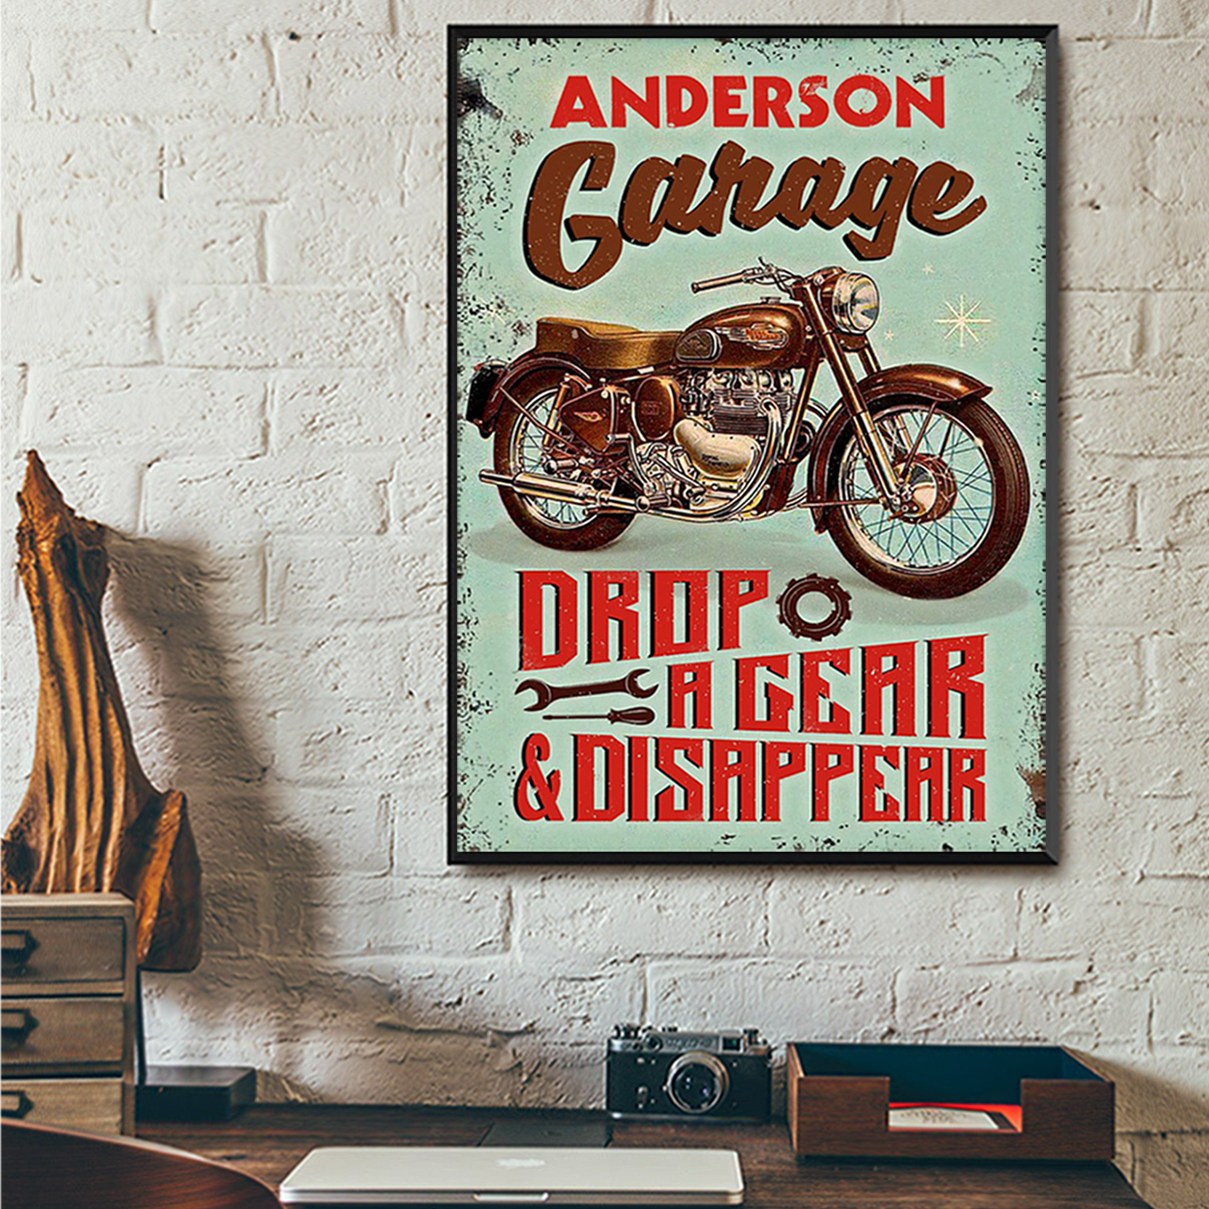 Personalized custom name motorcycle garage drop a gear and disappear poster A3